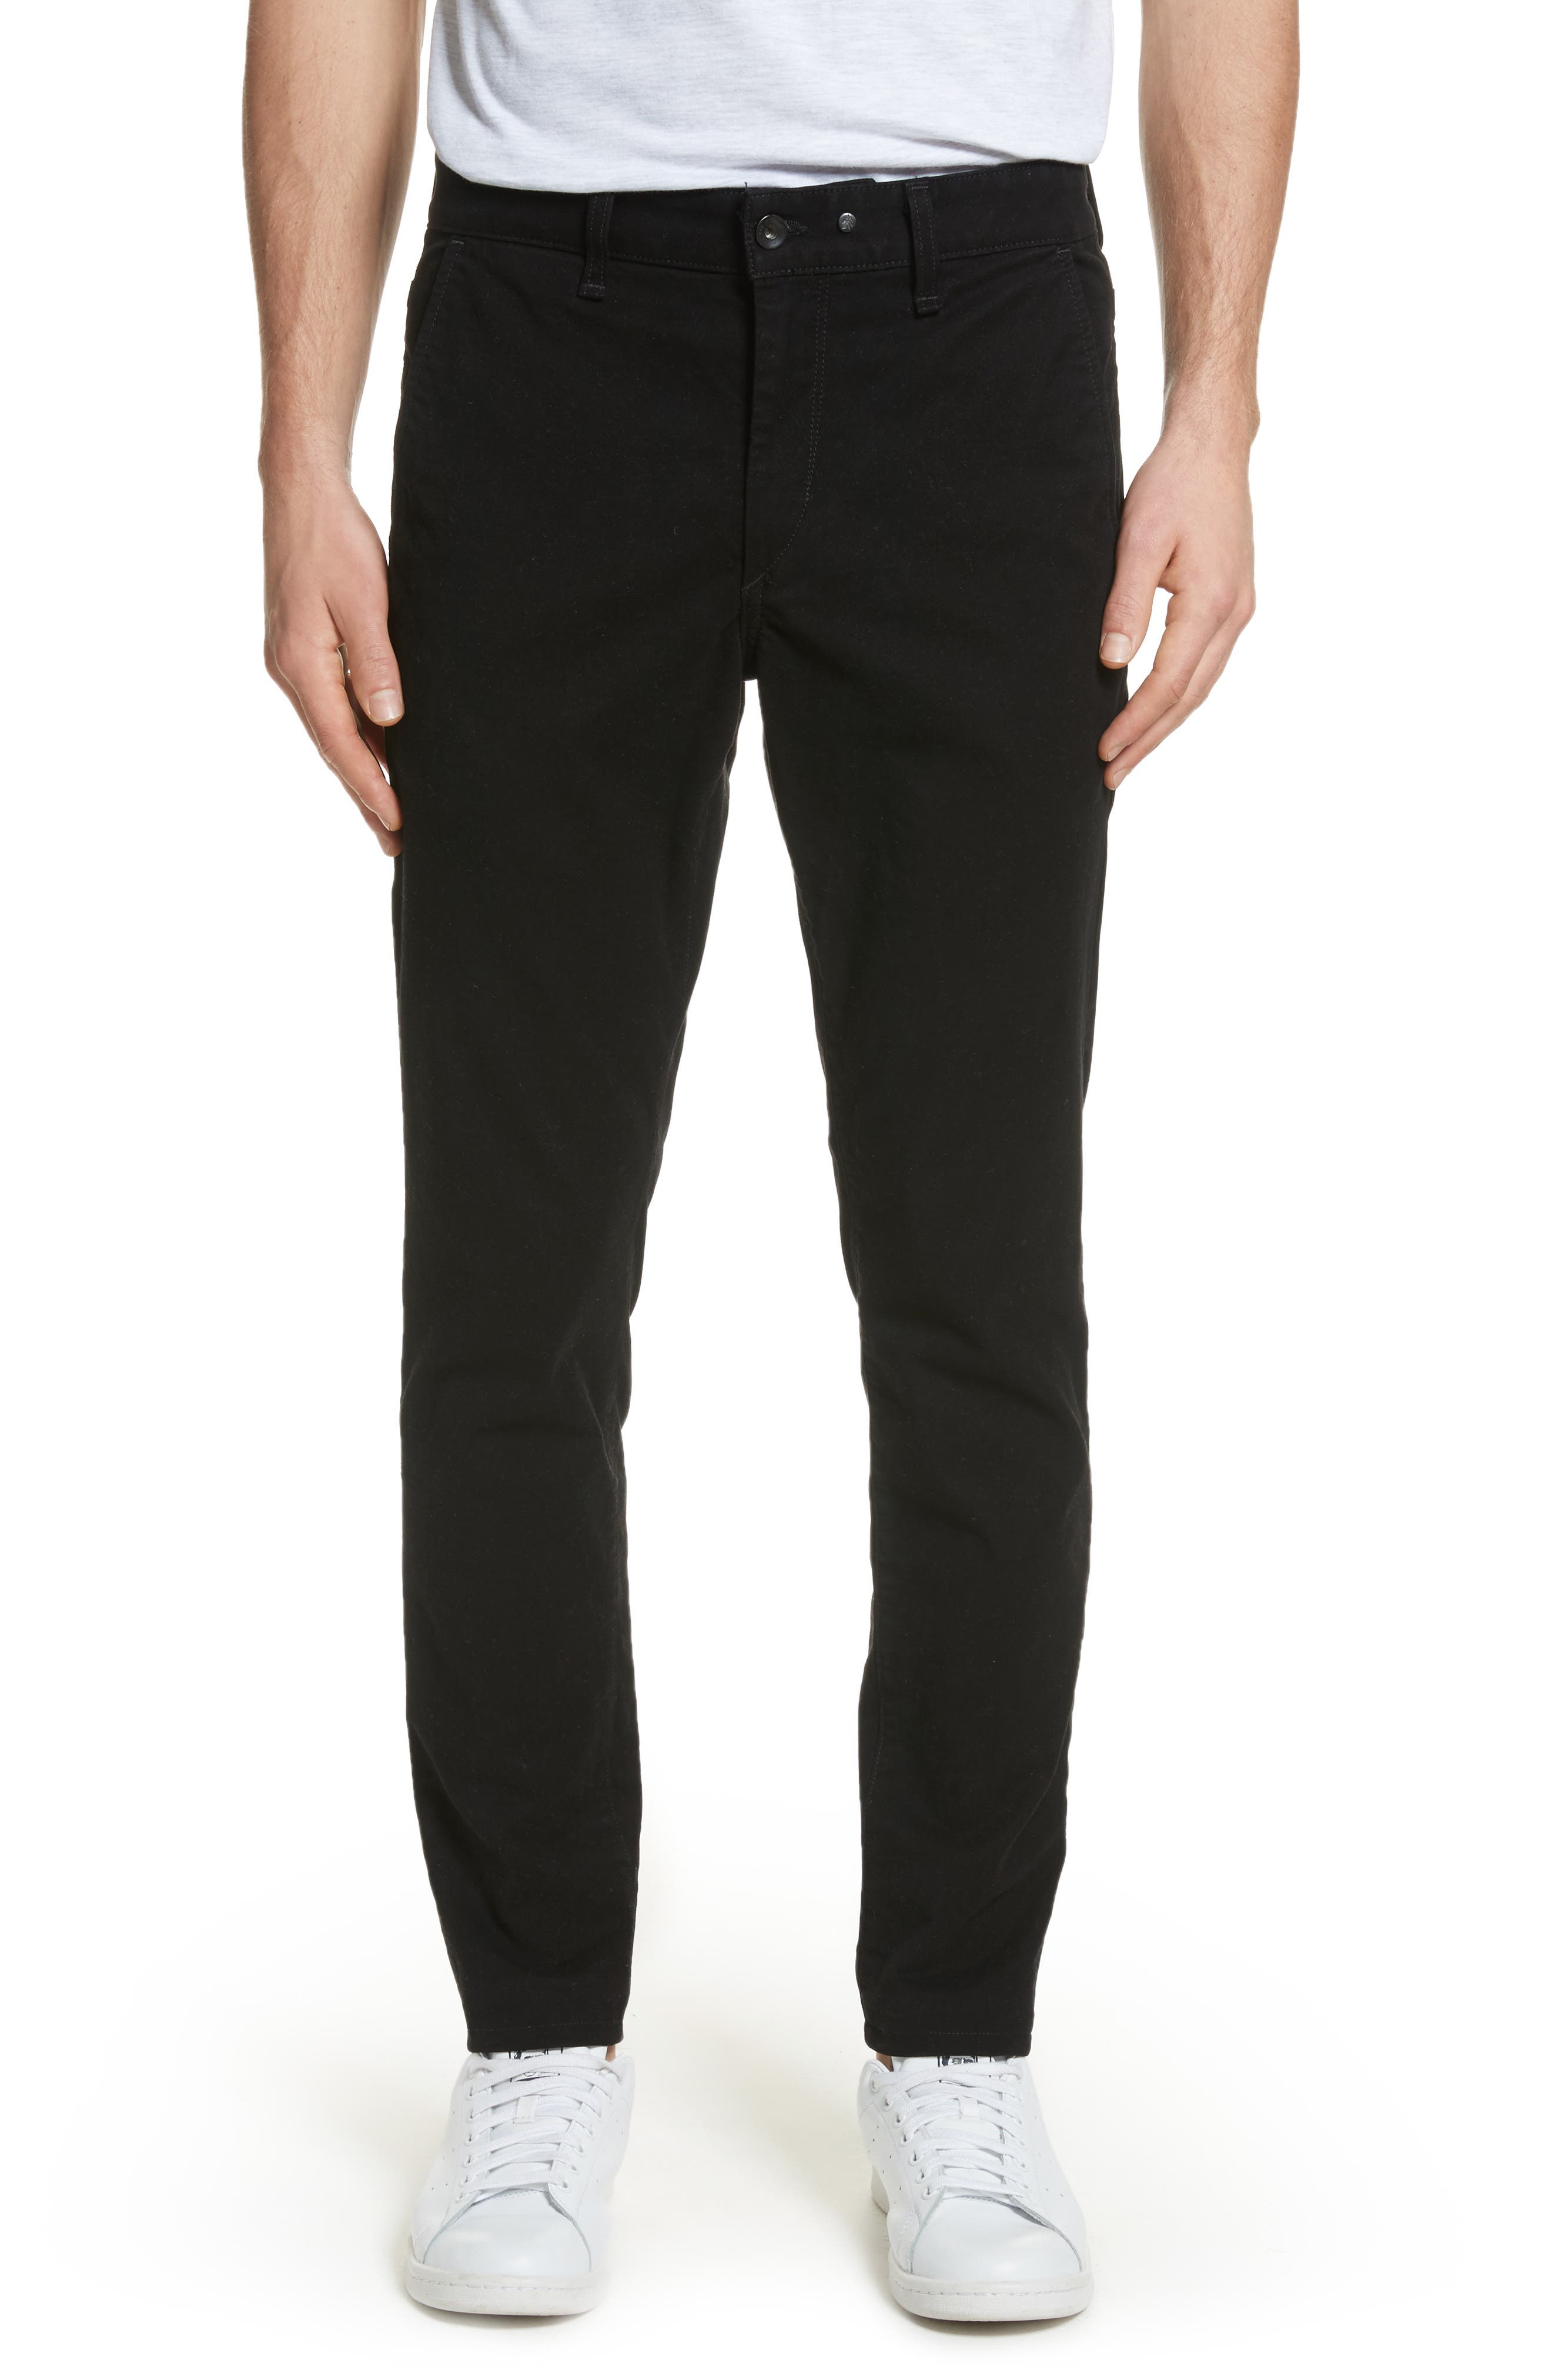 Fit 1 Chinos,                         Main,                         color, BLACK